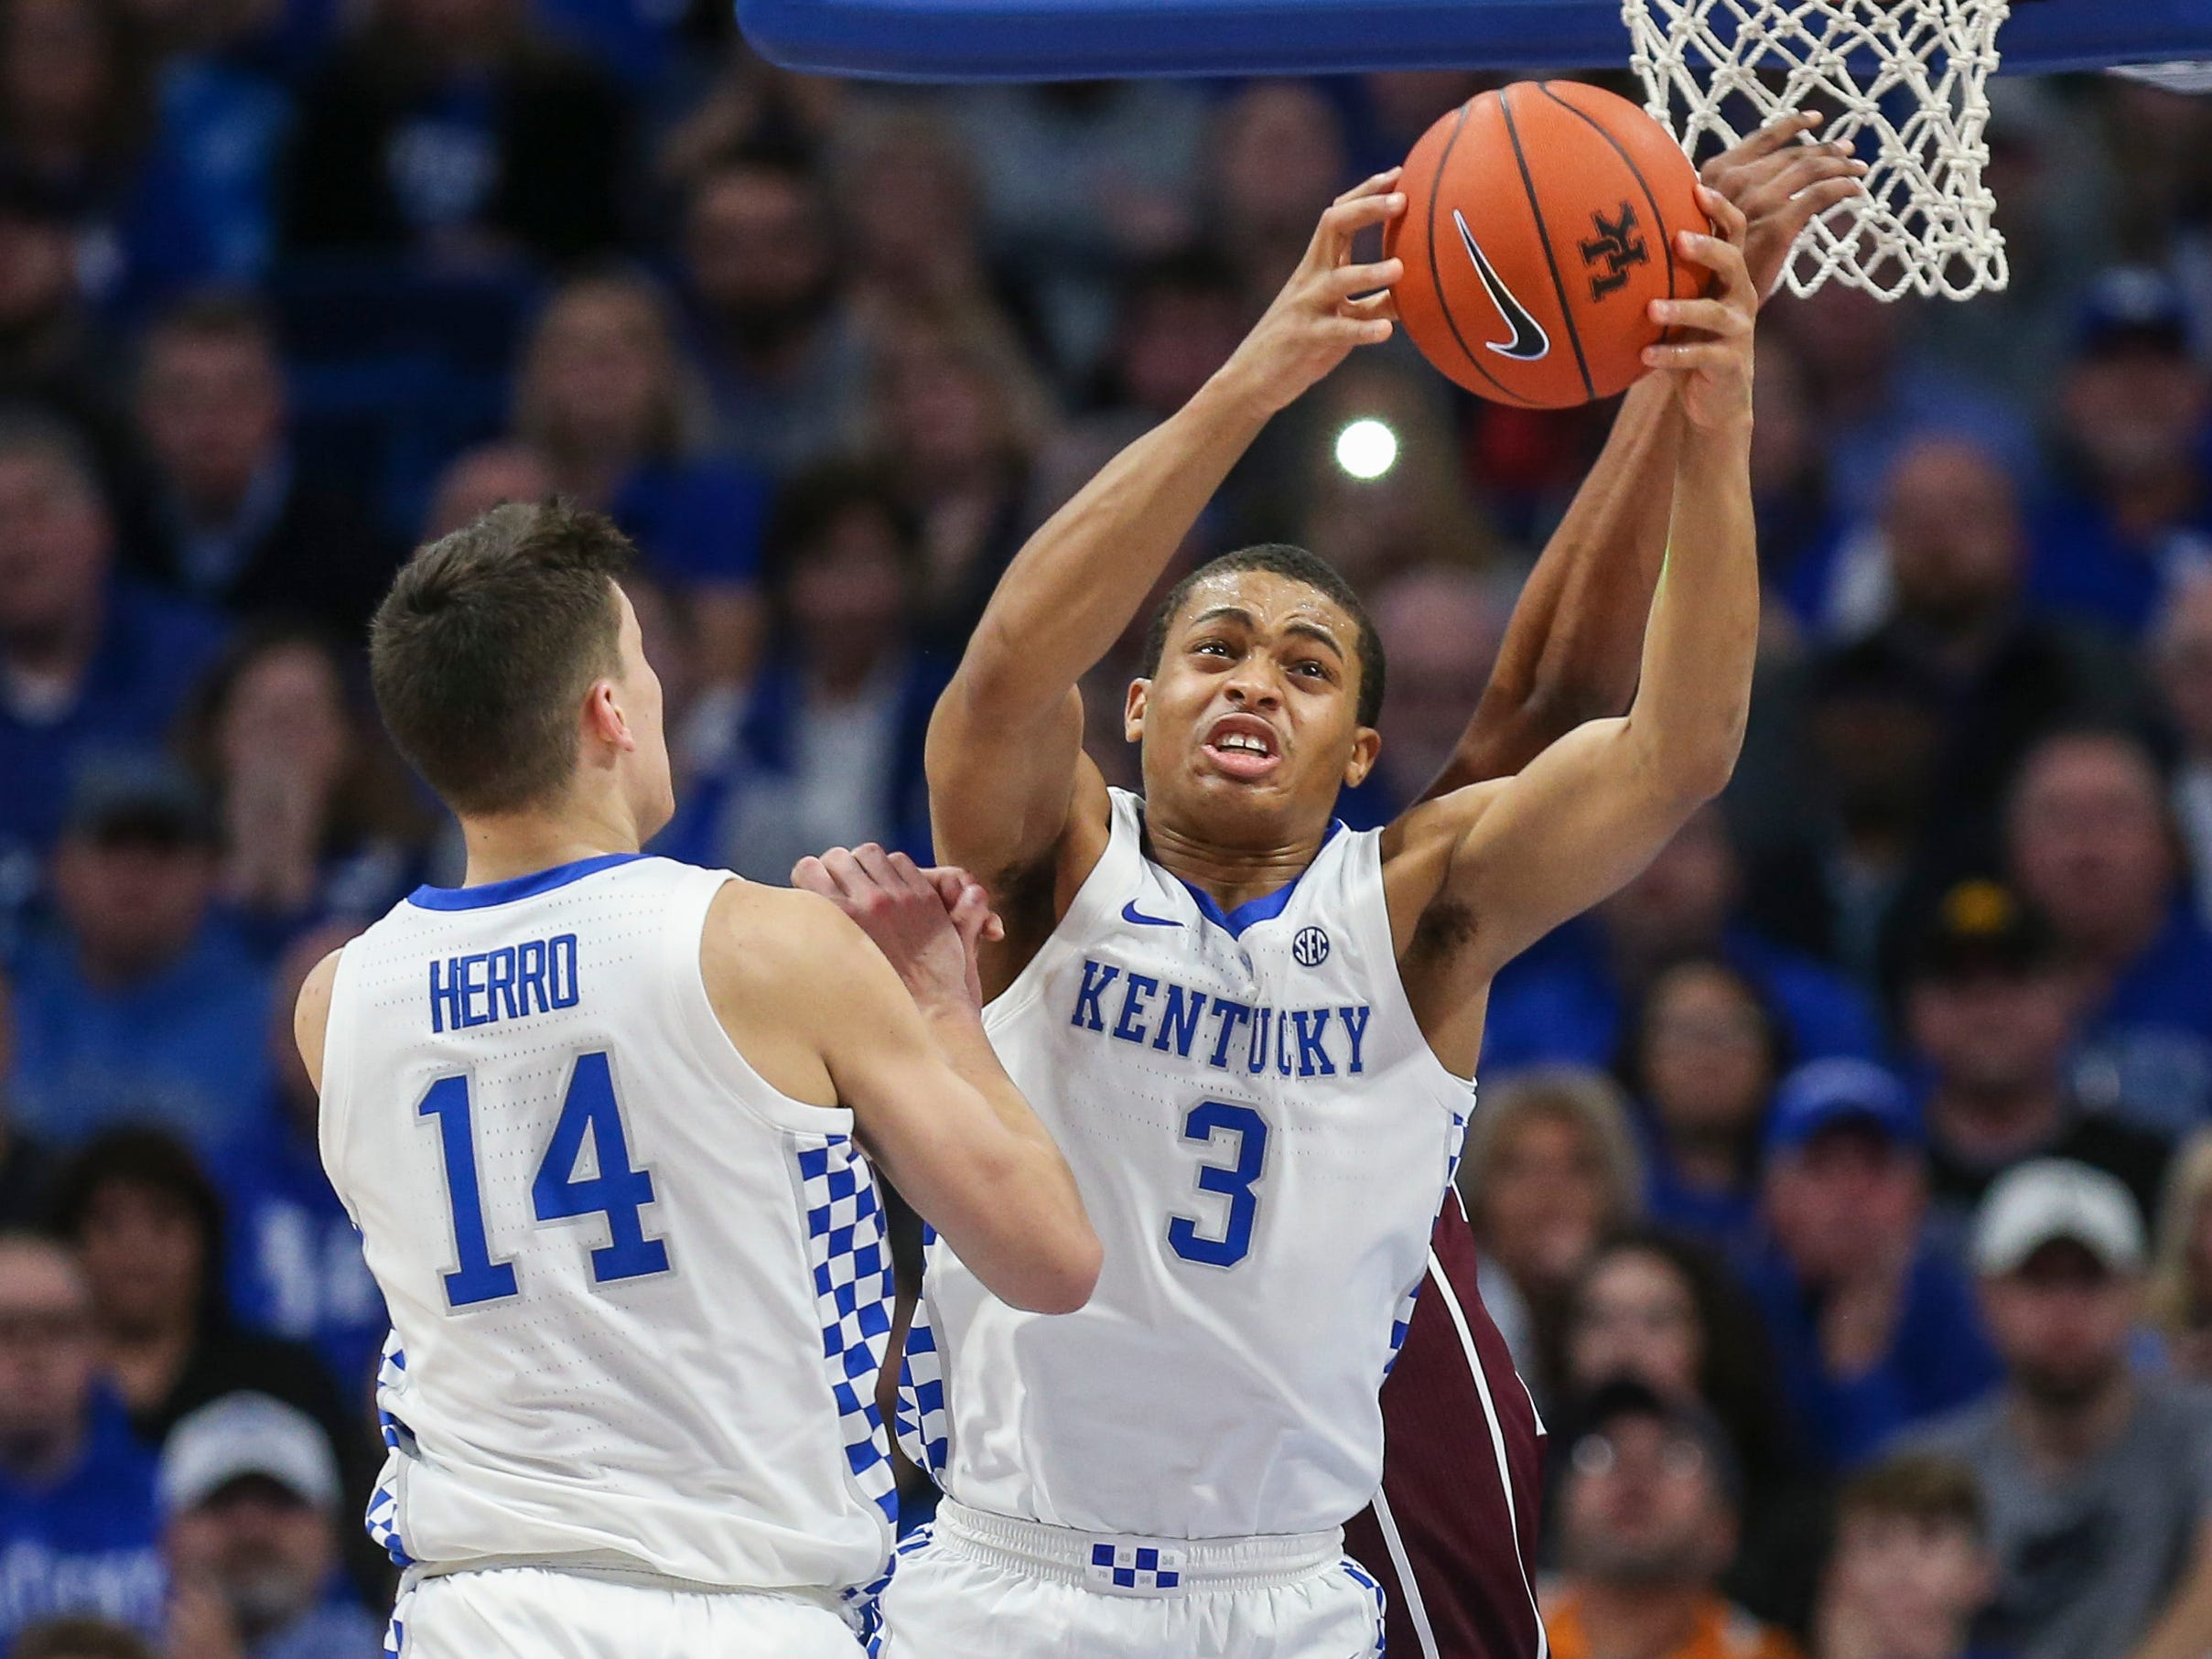 Kentucky's Keldon Johnson grabbed one of his eight rebounds in the Cats' 85-74 win Jan. 8, 2019 at Rupp Arena.